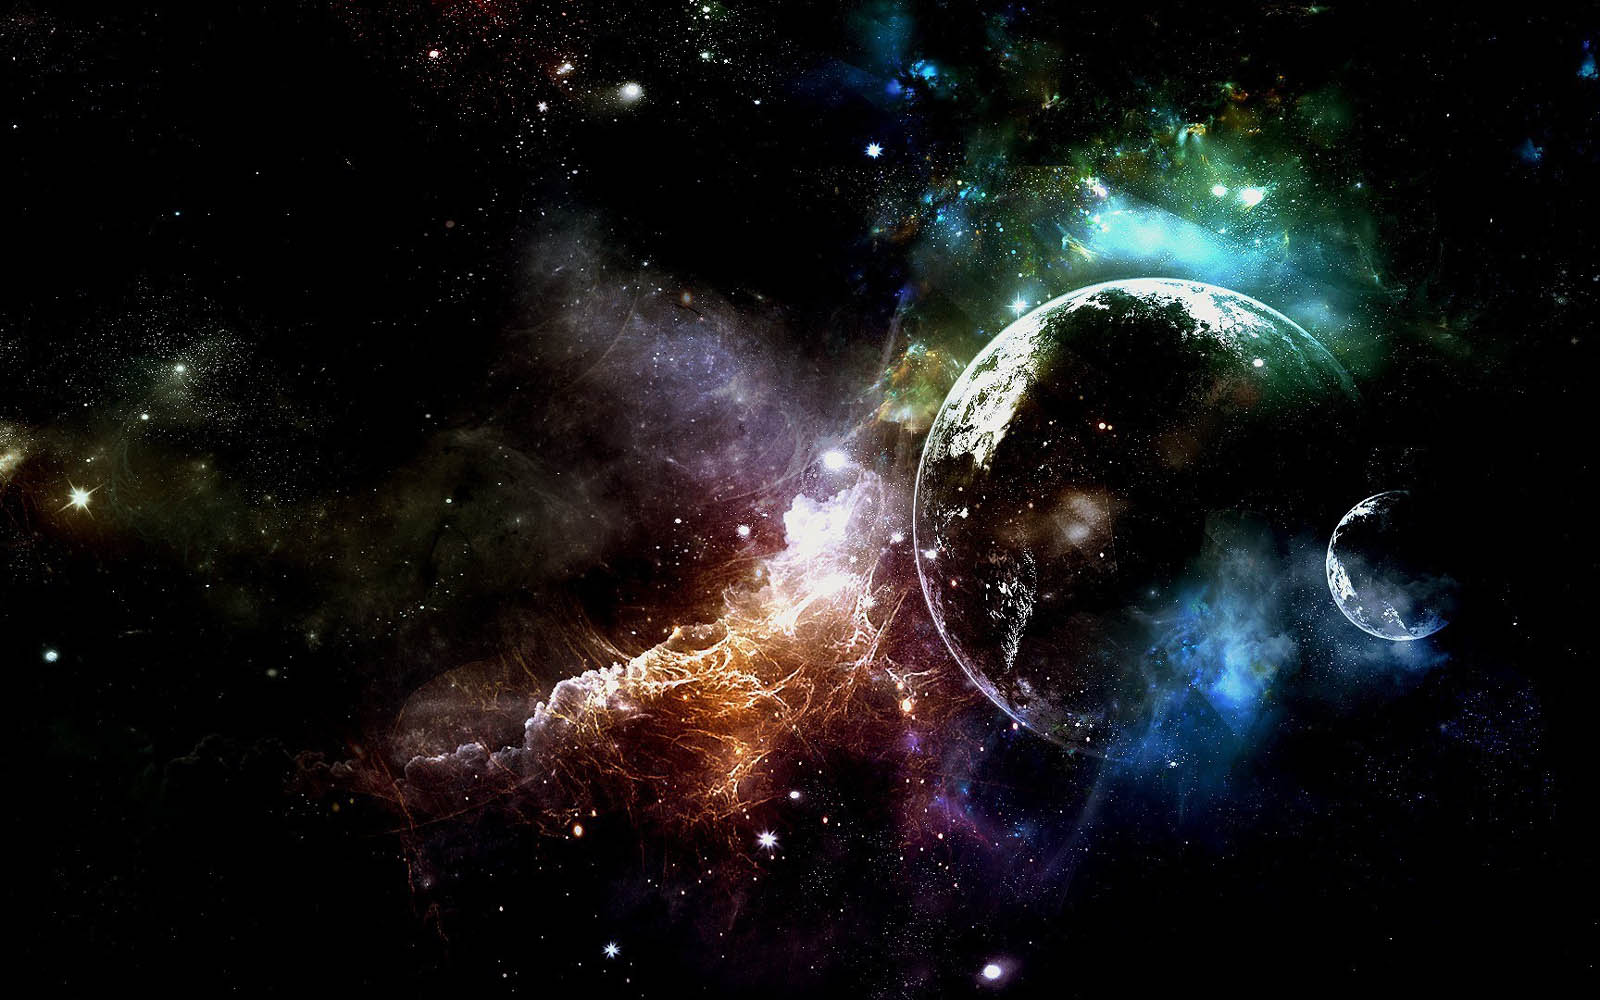 Space Wallpapers PlanetsIn Space Desktop Wallpapers Planets In Space 1600x1000